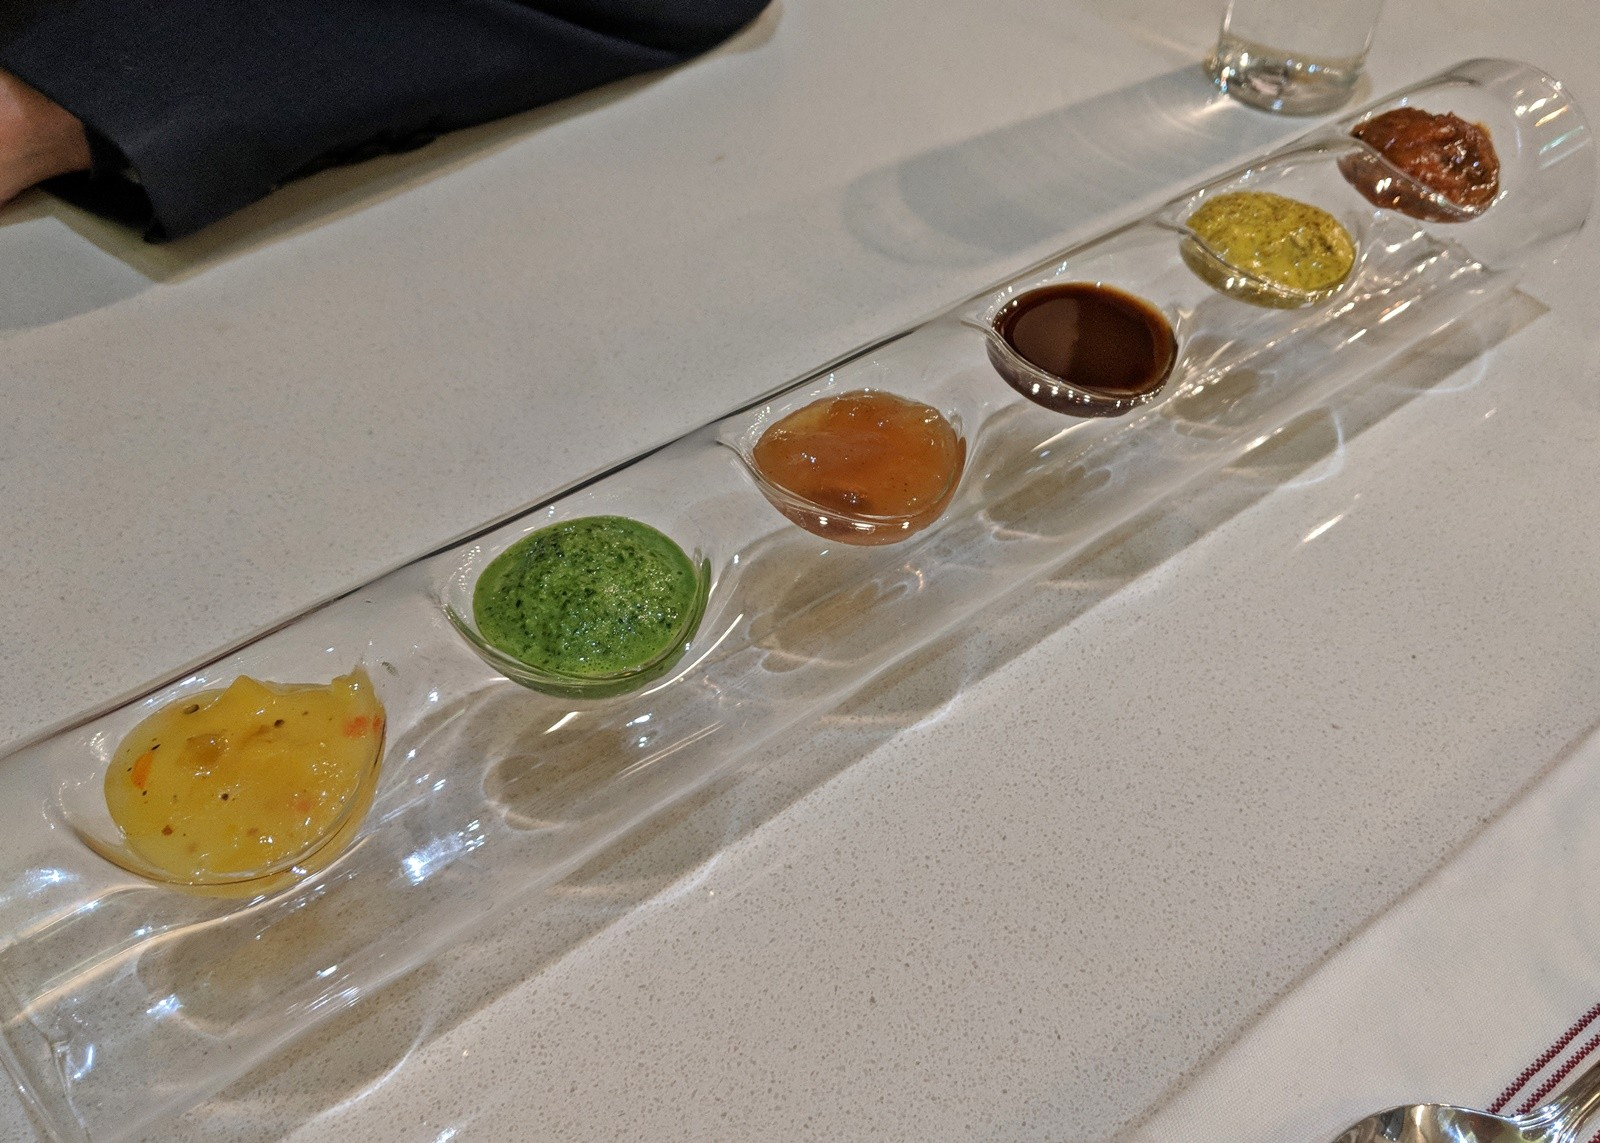 Long clear tray with six sauces in yellow, green, oranges and browns.